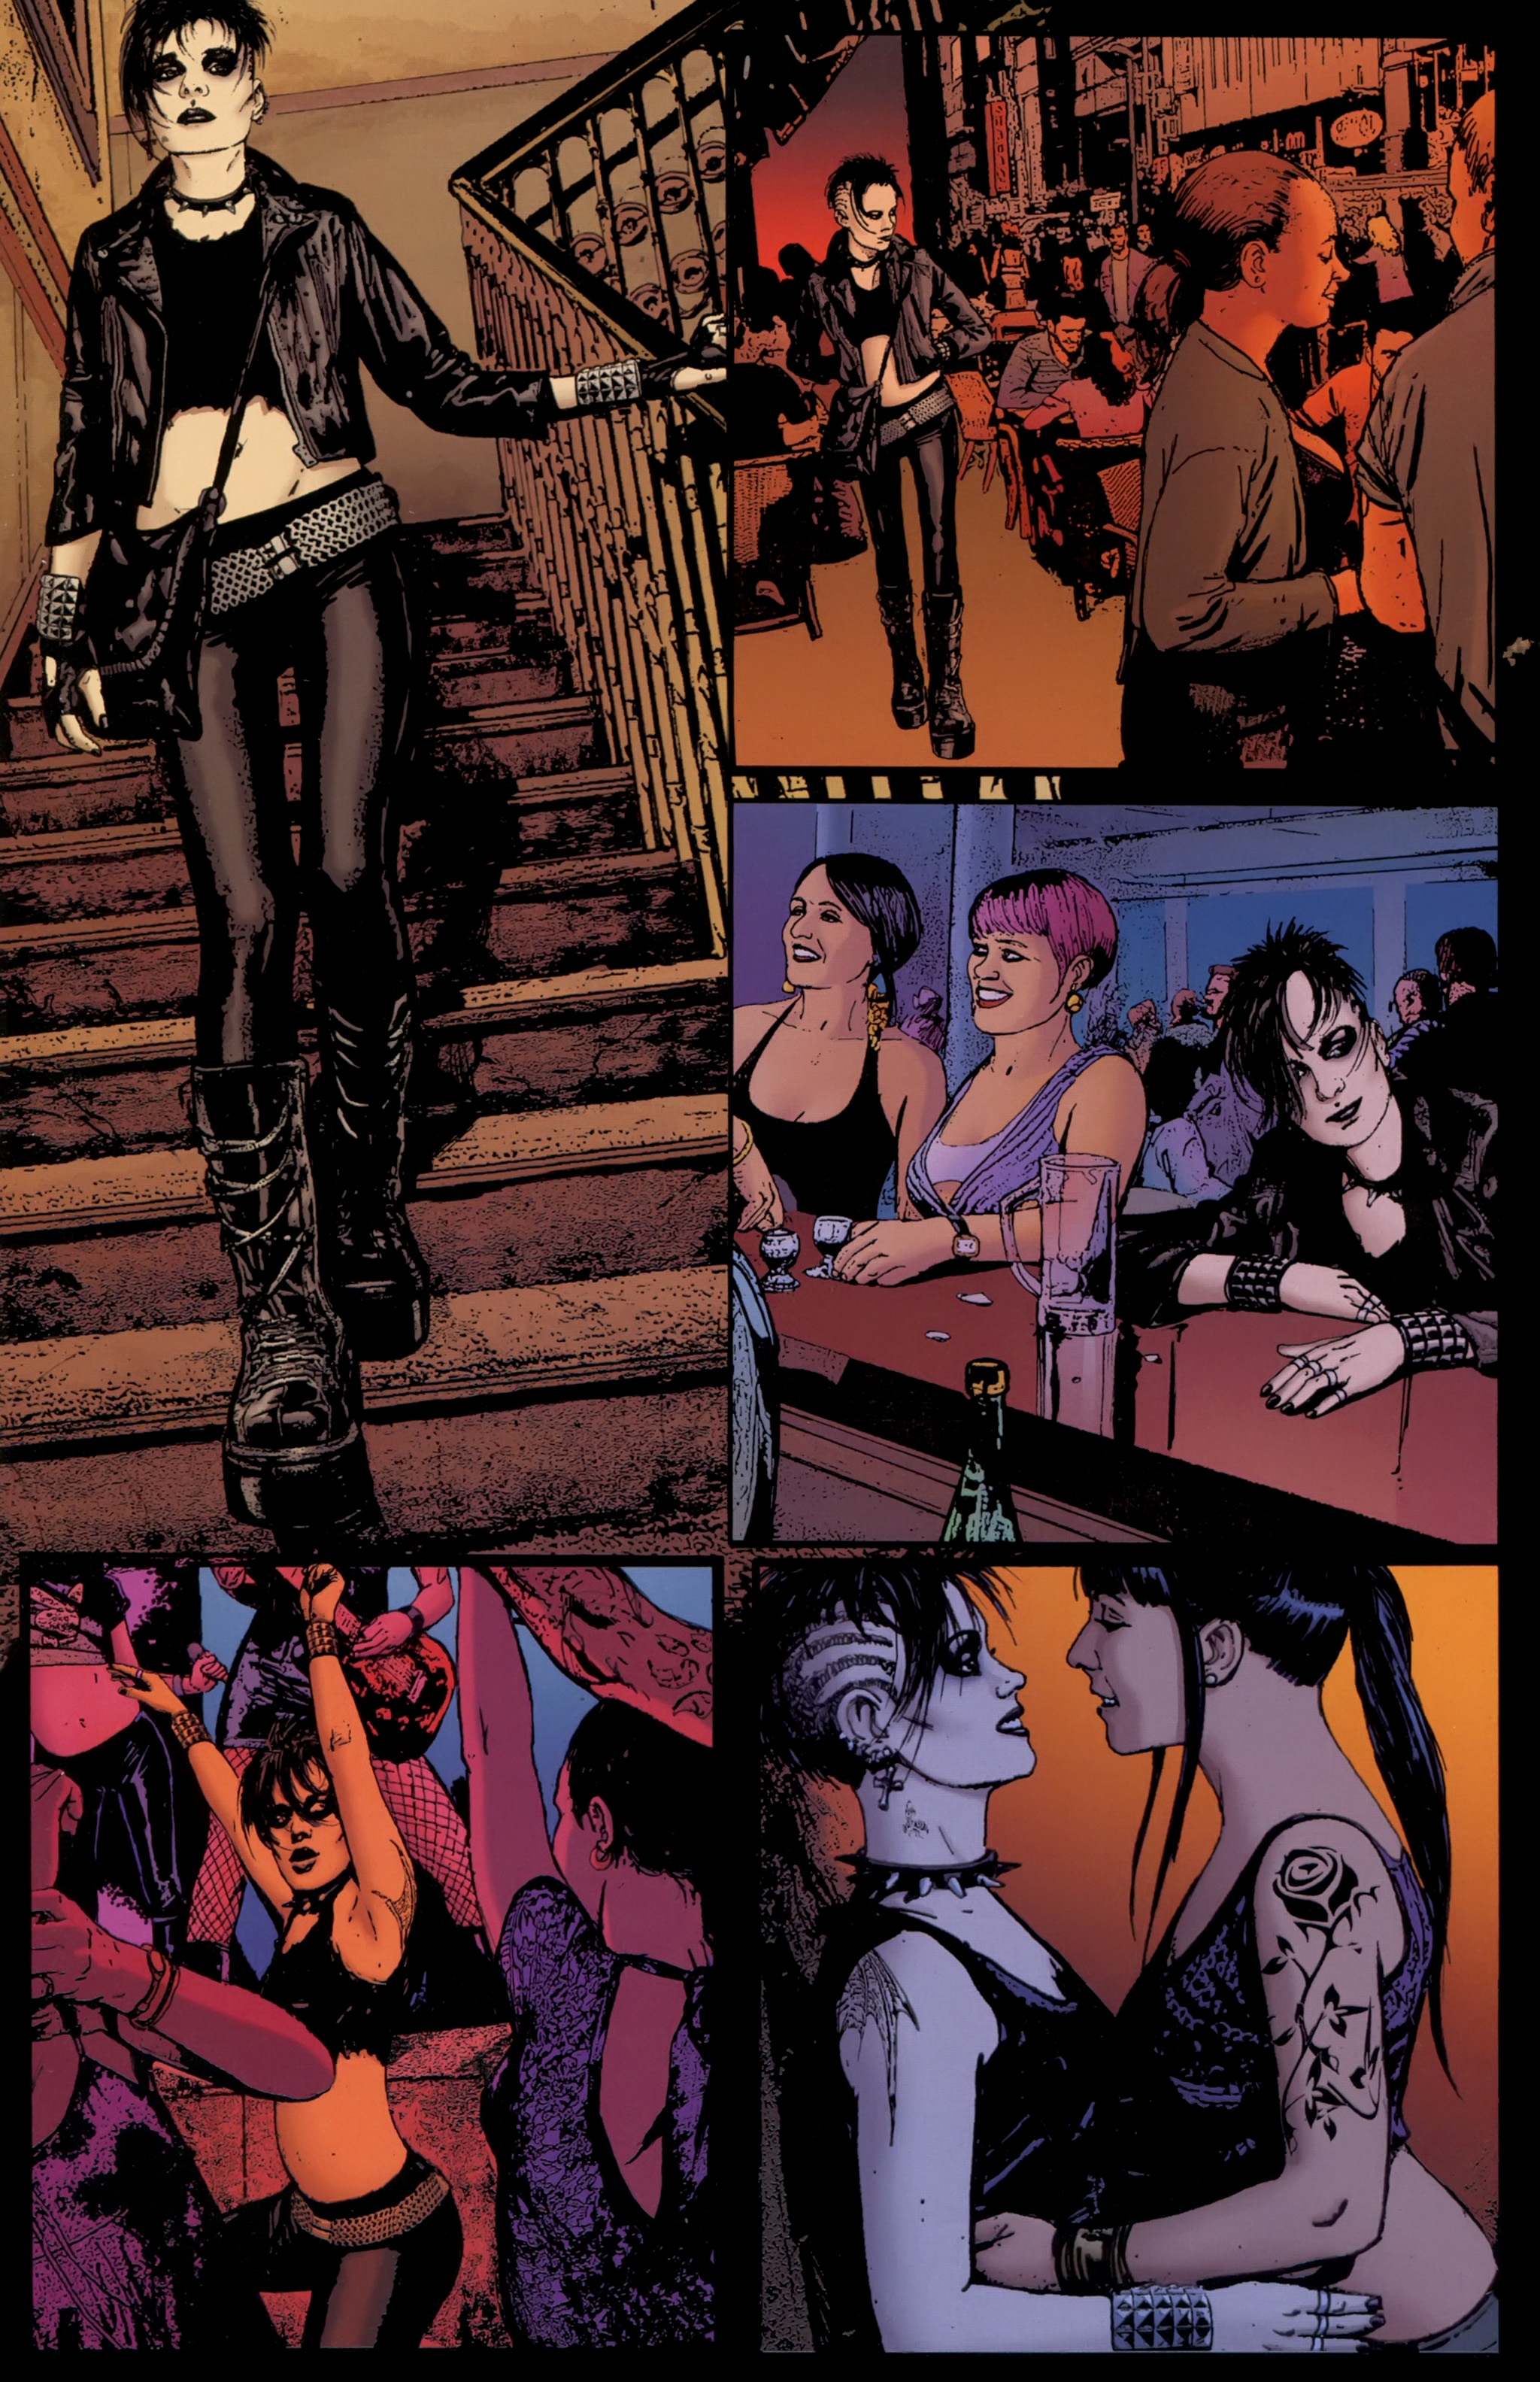 Read online The Girl With the Dragon Tattoo comic -  Issue # TPB 1 - 68